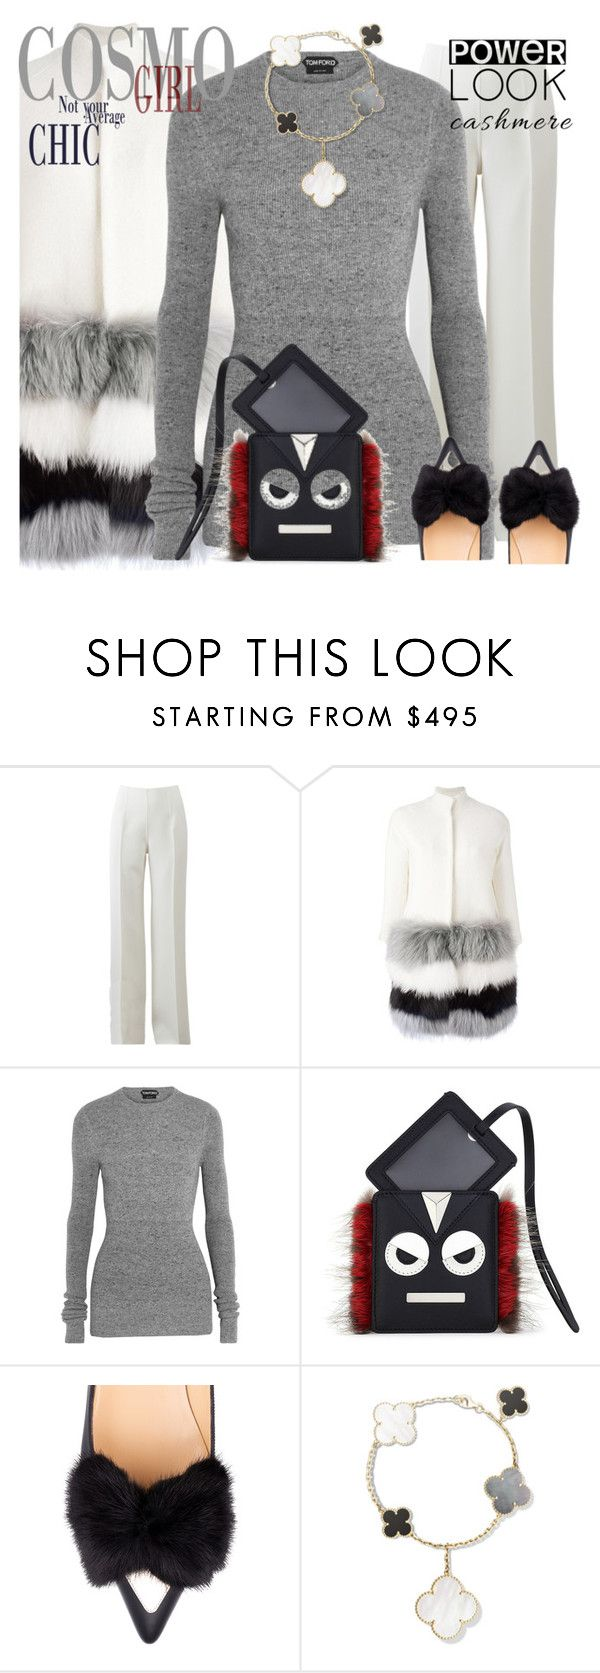 """Winter wear"" by ellenfischerbeauty ❤ liked on Polyvore featuring Michael Kors, Ava Adore, Tom Ford, Fendi and Eugenia Kim"